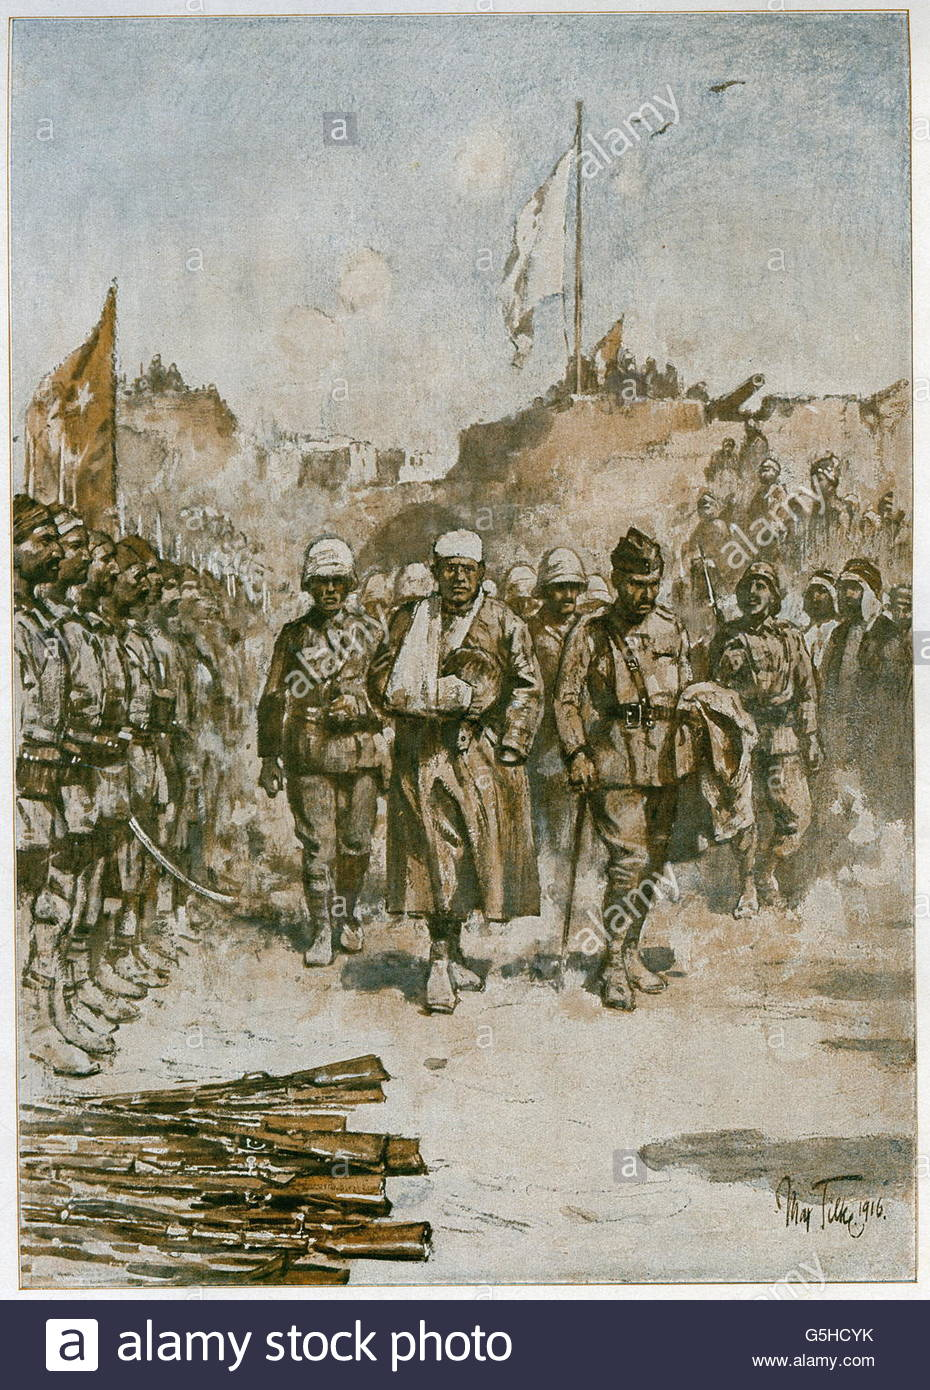 events, First World War/WWI, Middle East, siege of Kut 7.12.1915 - 29.4.1916, Artist's Copyright must also be - Stock Image